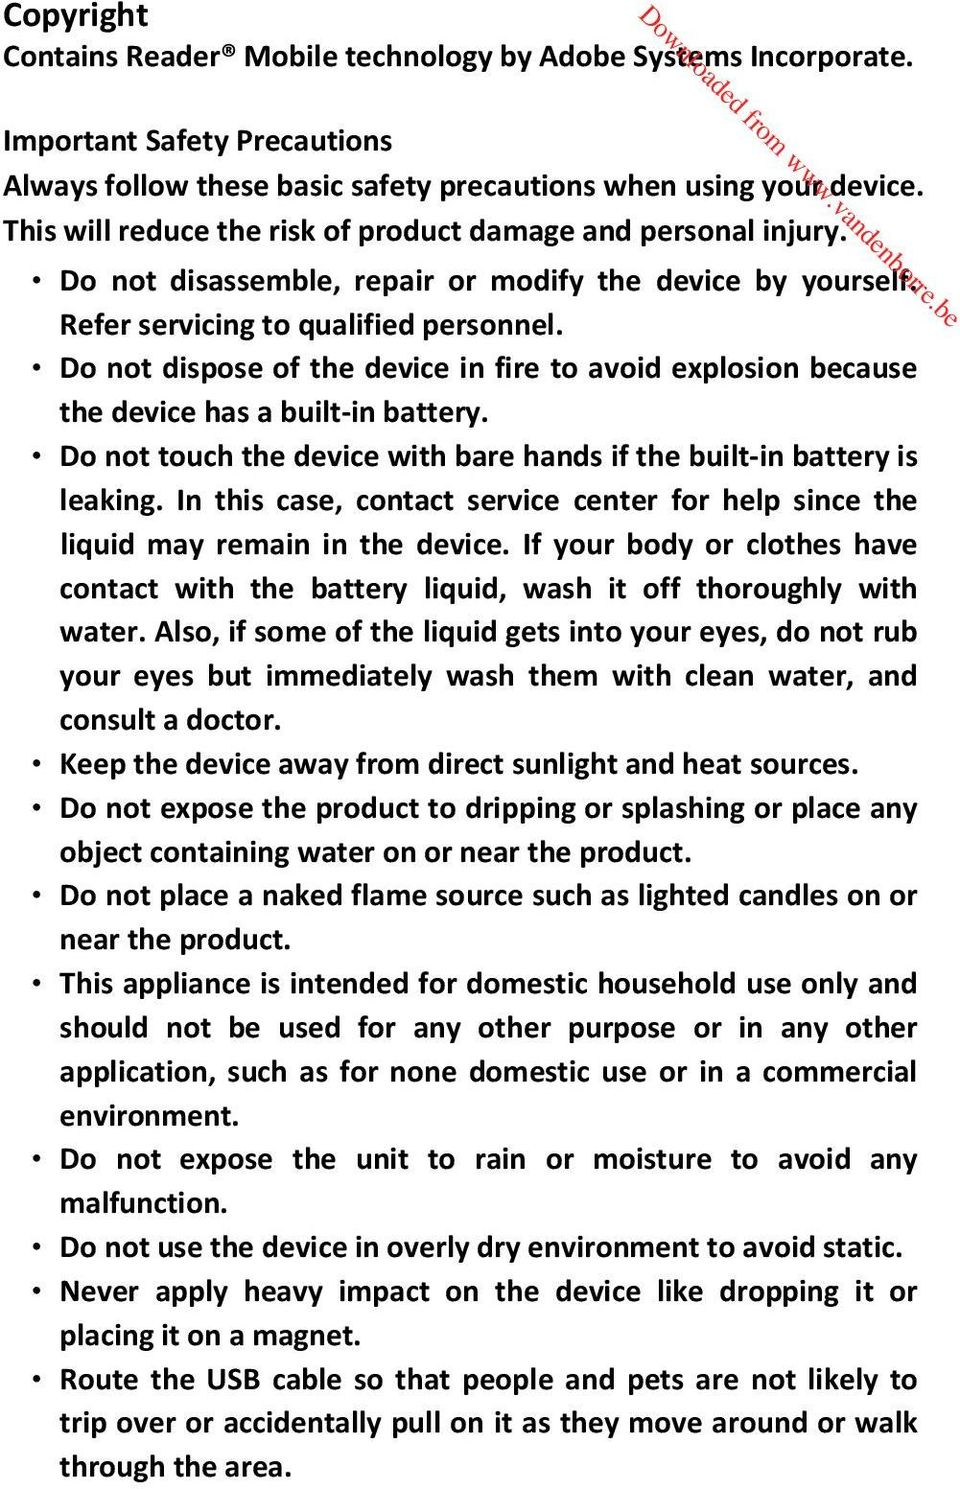 Do not dispose of the device in fire to avoid explosion because the device has a built in battery. Do not touch the device with bare hands if the built in battery is leaking.